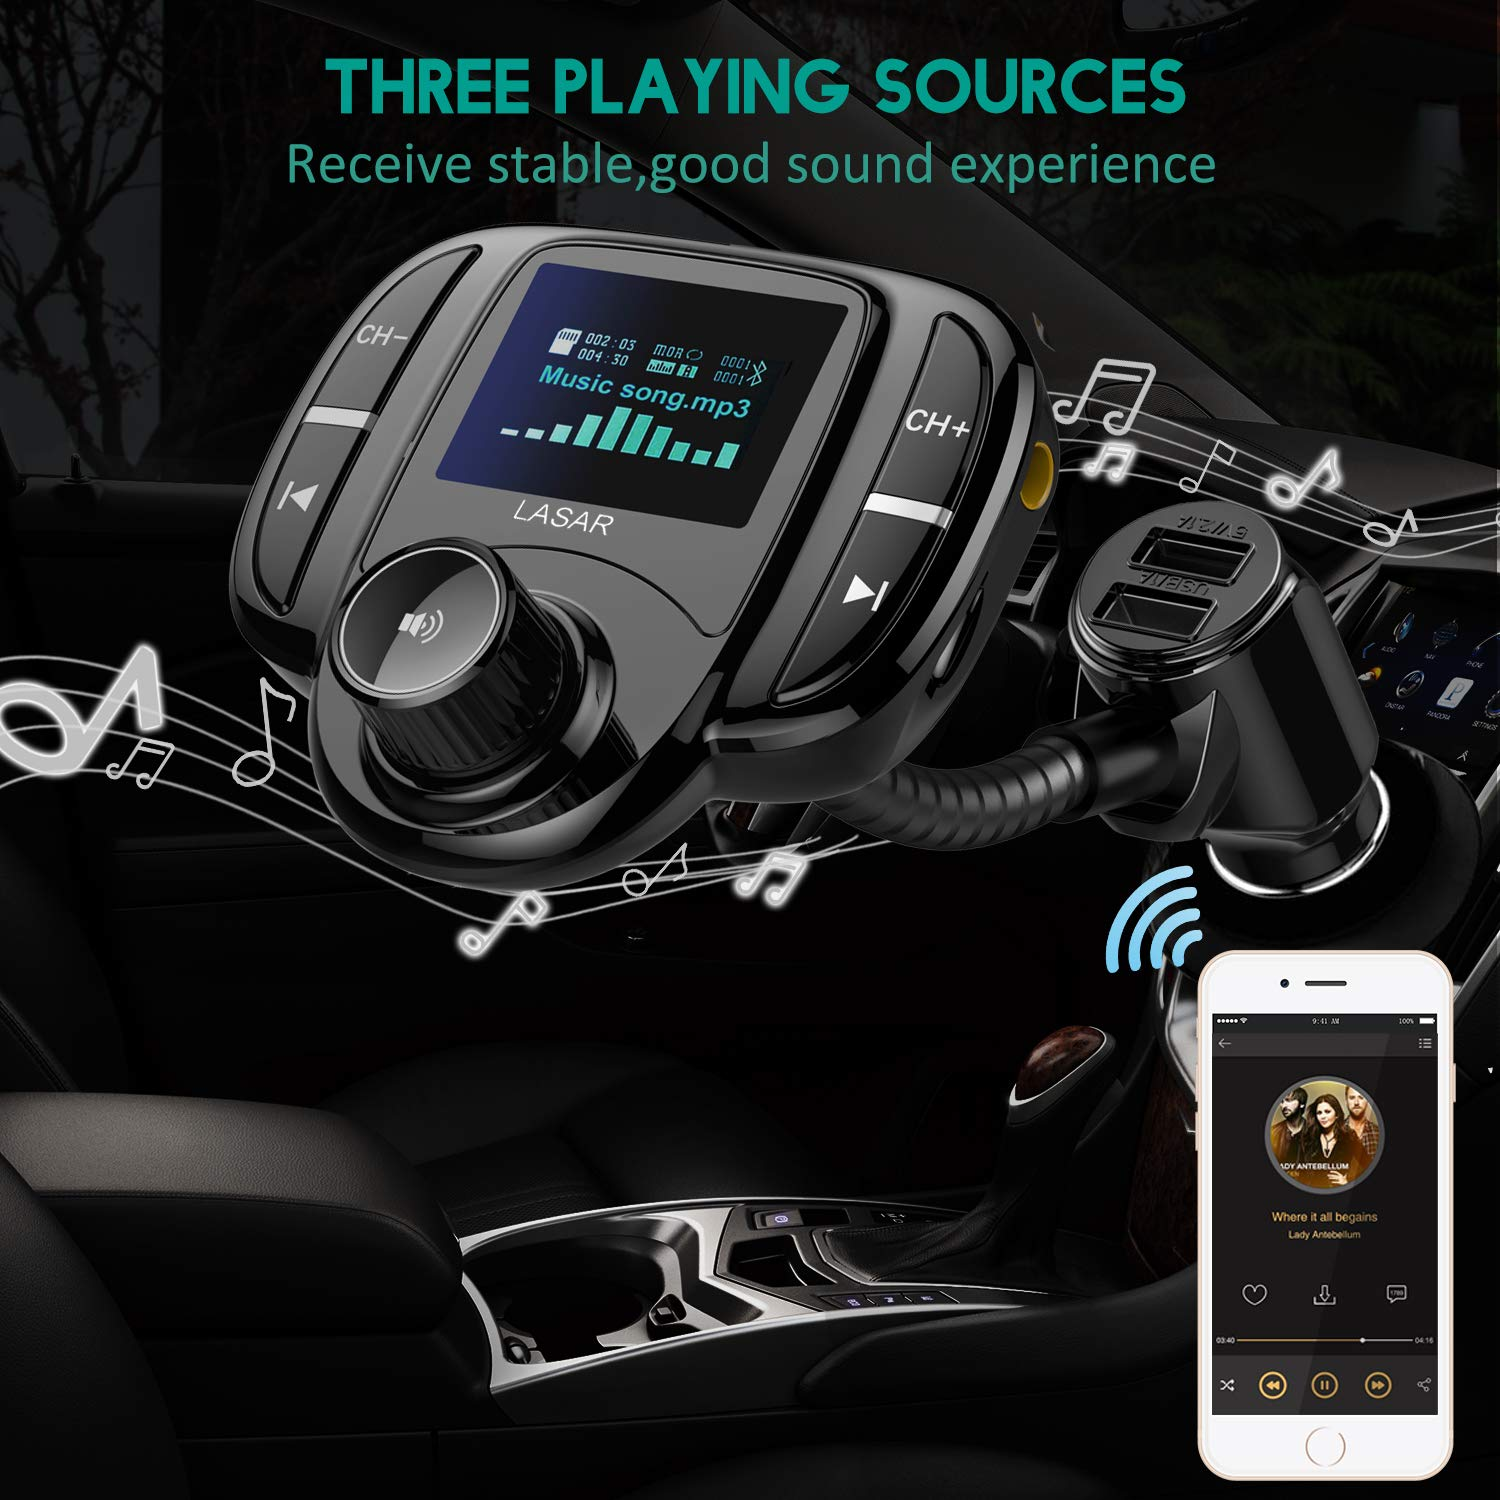 """LASAR Bluetooth FM Transmitter,Wireless Radio Adapter Hands-Free Calling Car Kit QC3.0 and Smart Dual USB Port W 1.7"""" Display, Support USB Drive,AUX Input/Output, TF Card MP3 Player by LASAR (Image #6)"""